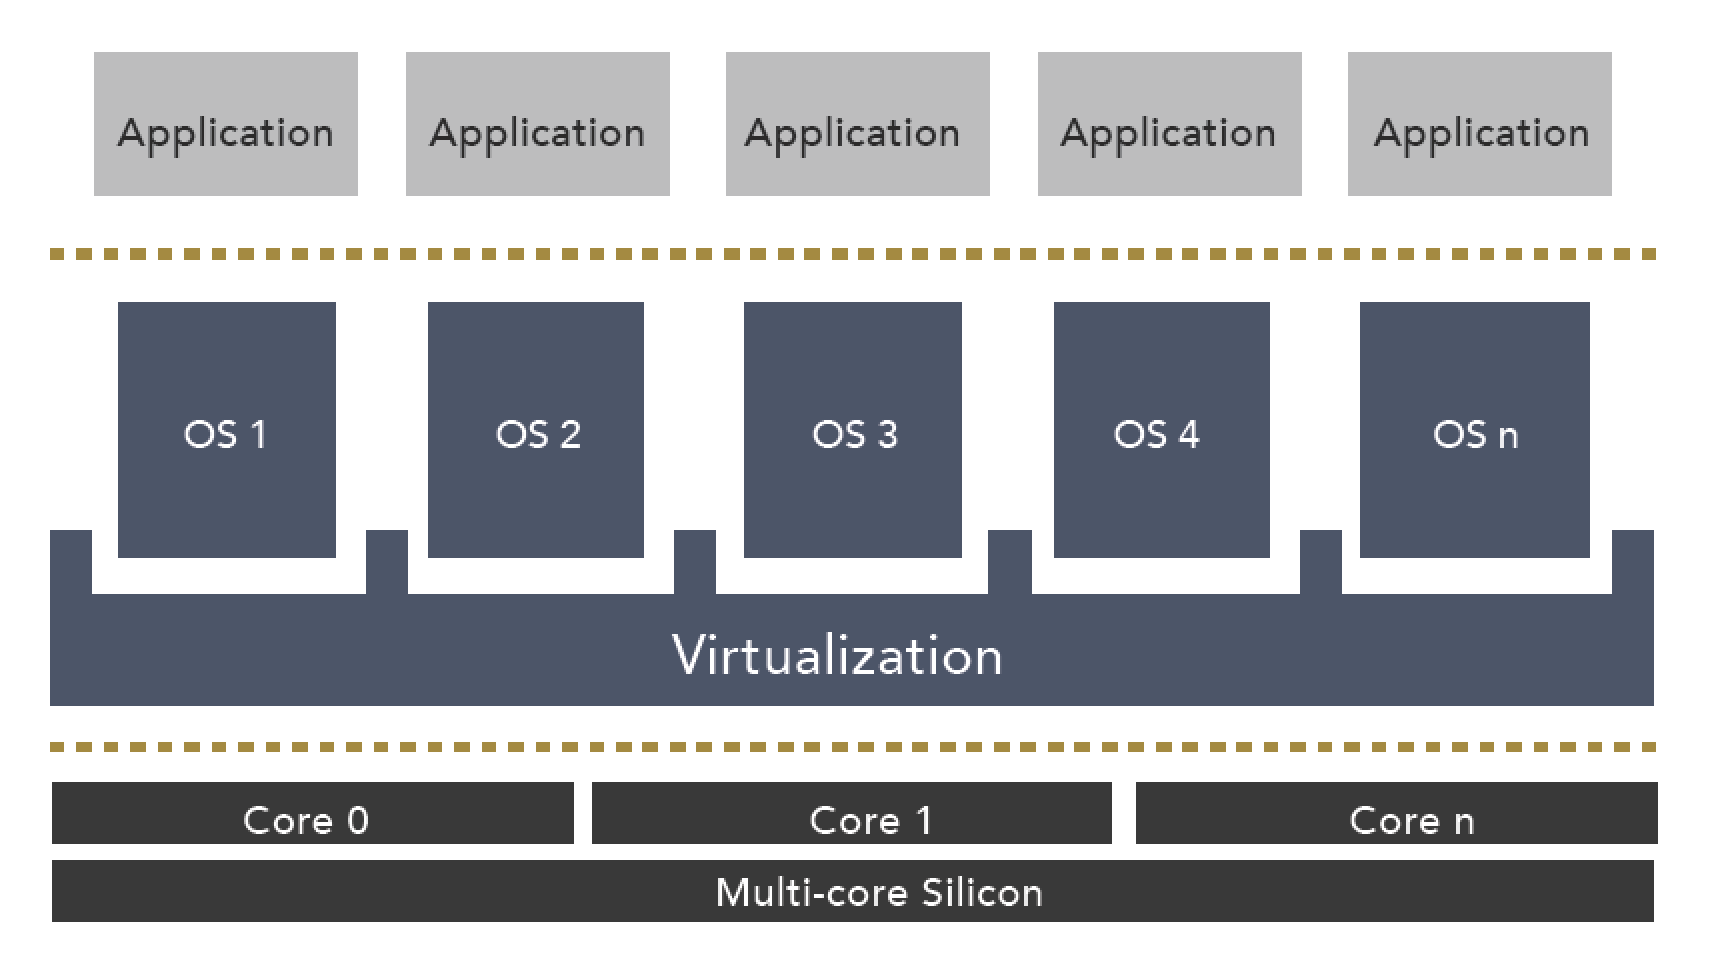 Figure 2 – Reference architecture for multiple embedded systems running on a single processor using virtualization